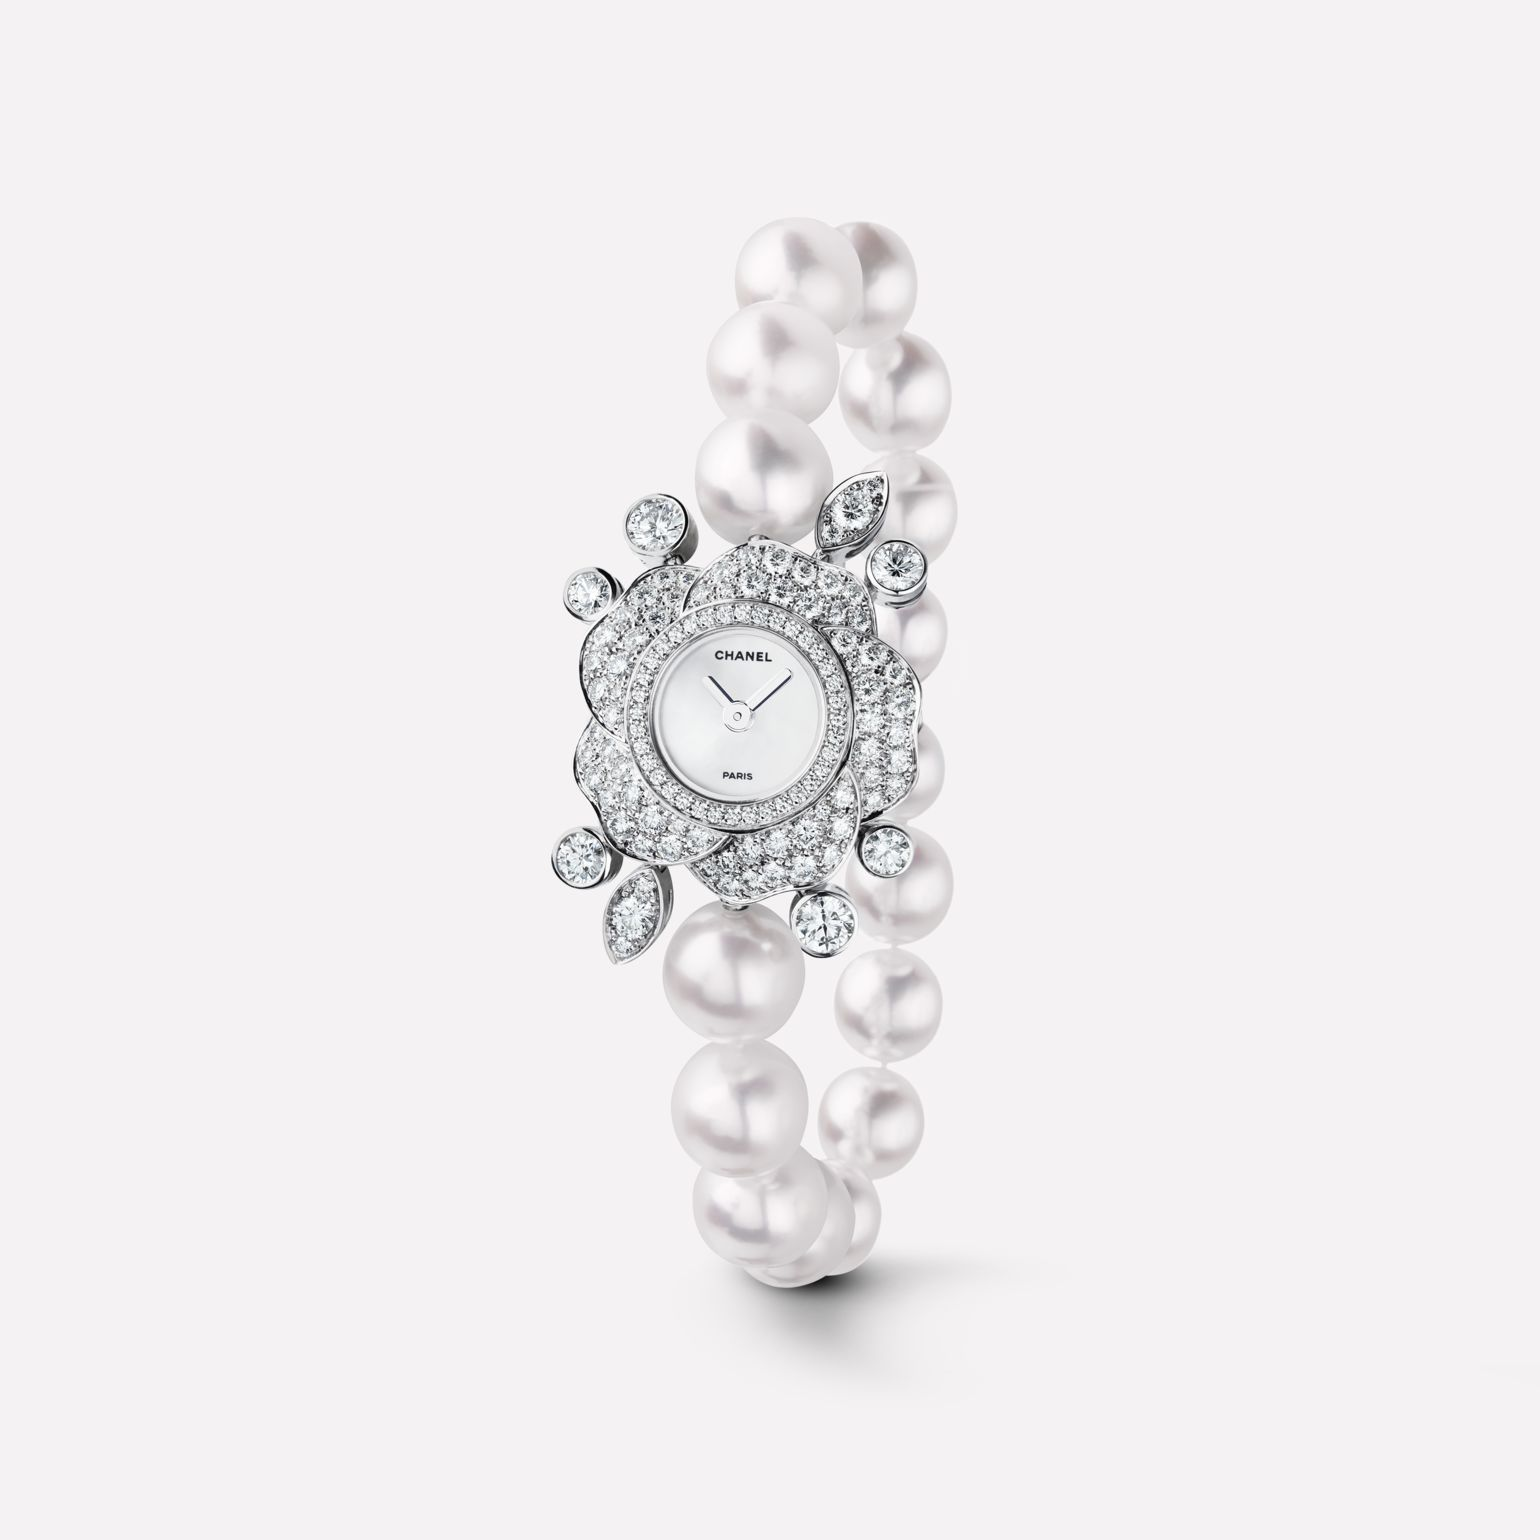 Camélia Jewelry Watch Camellia motif in 18K white gold with diamonds and cultured pearls